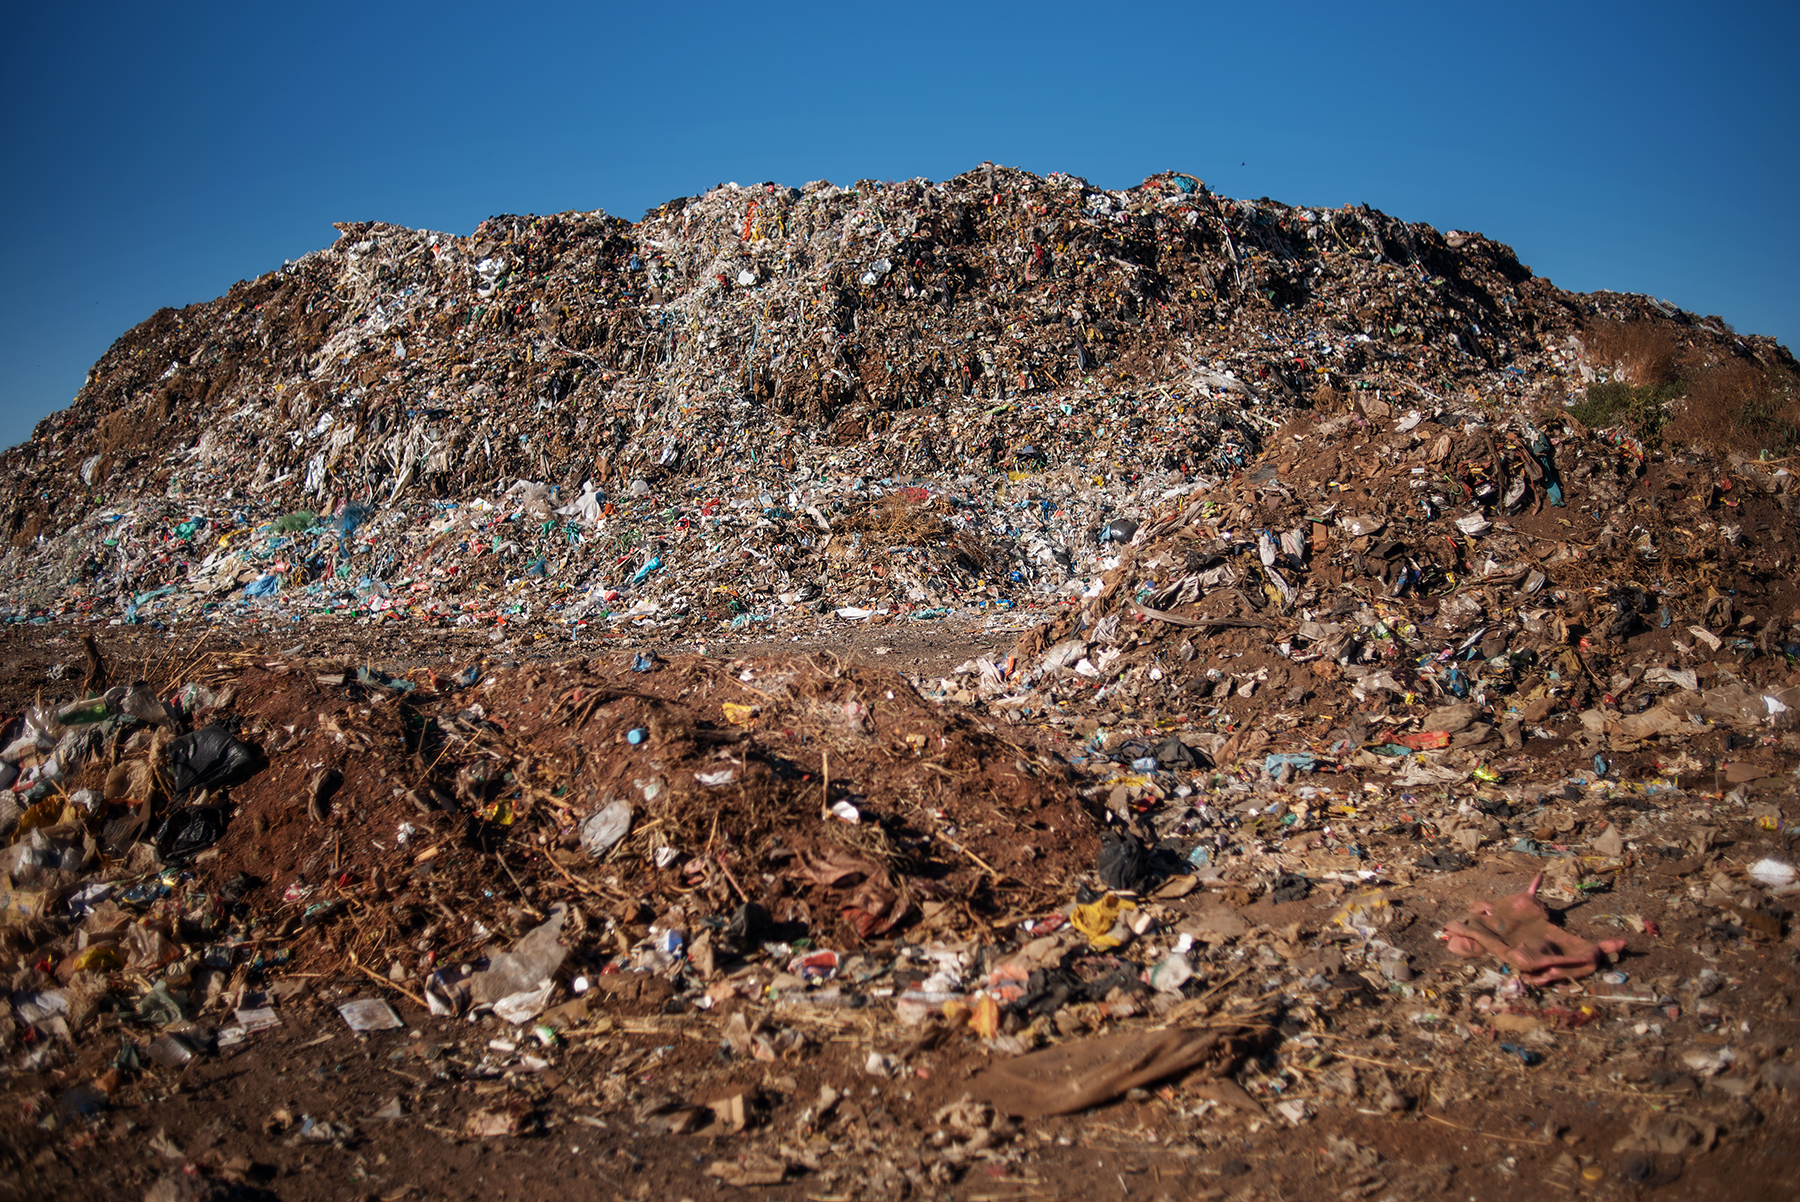 A garbage pile at the Palm Springs landfill in the outskirt of Johannesburg, South Africa, on June 28, 2019.